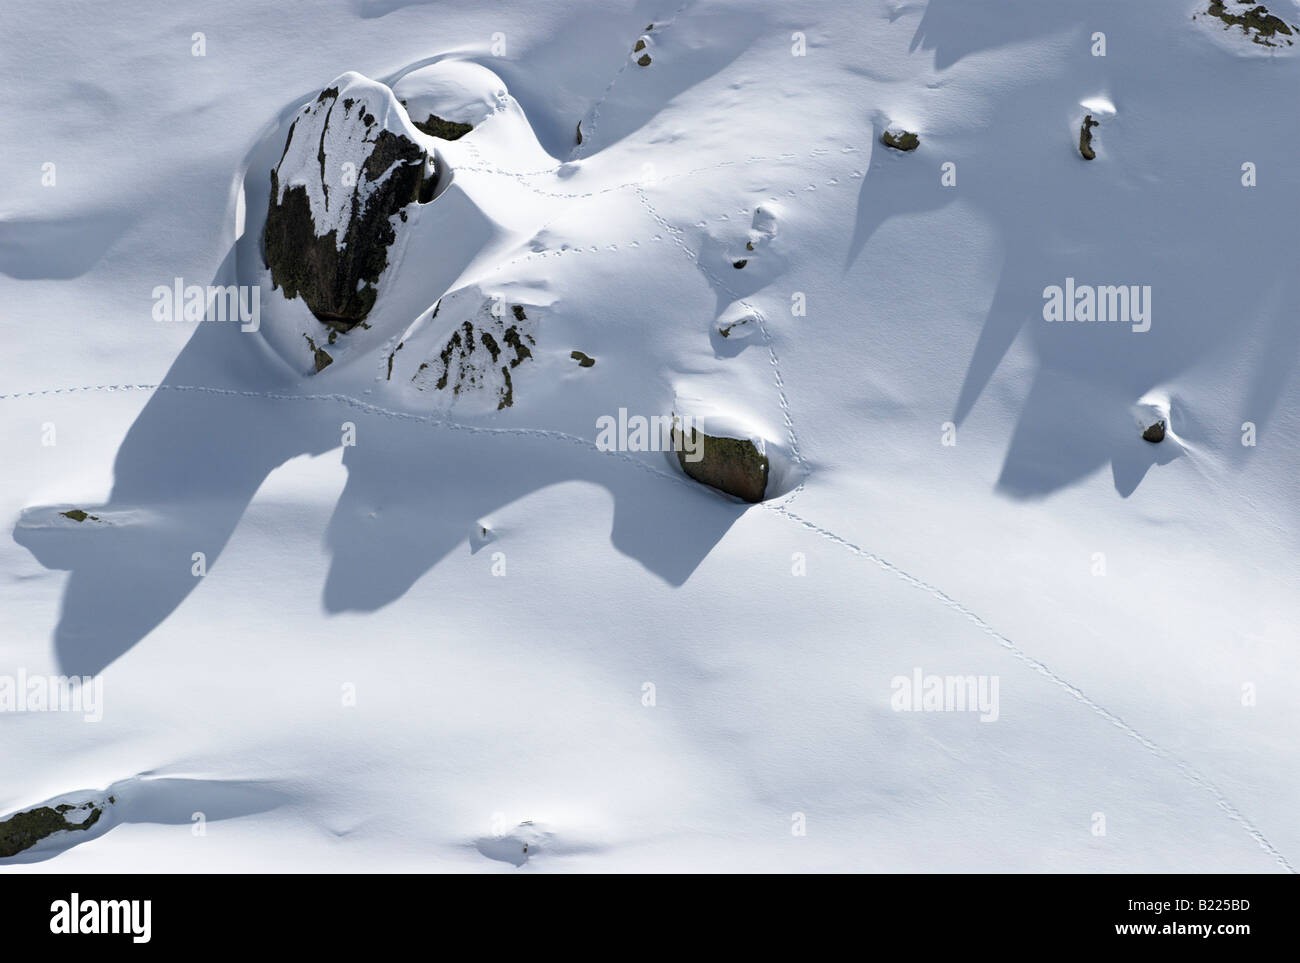 Animal tracks in fresh nicely textured snow surface - Stock Image